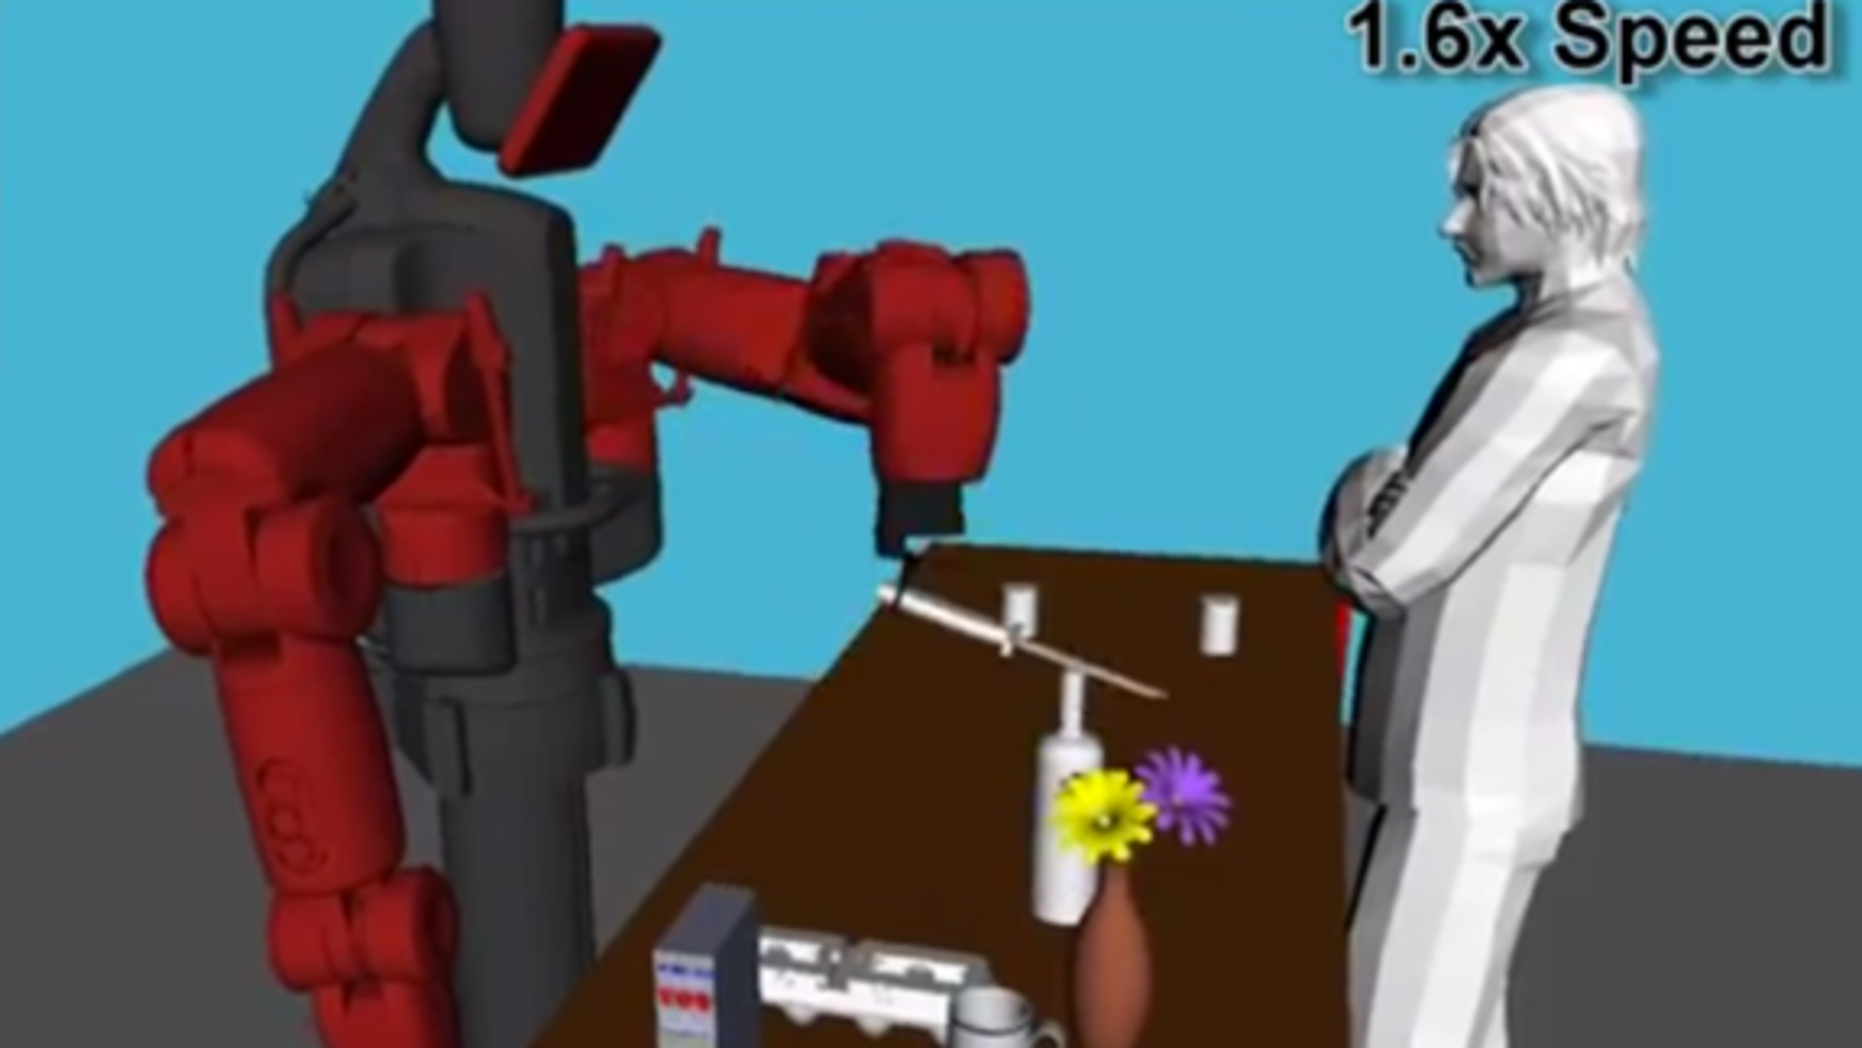 Would you let a robot handle your groceries?